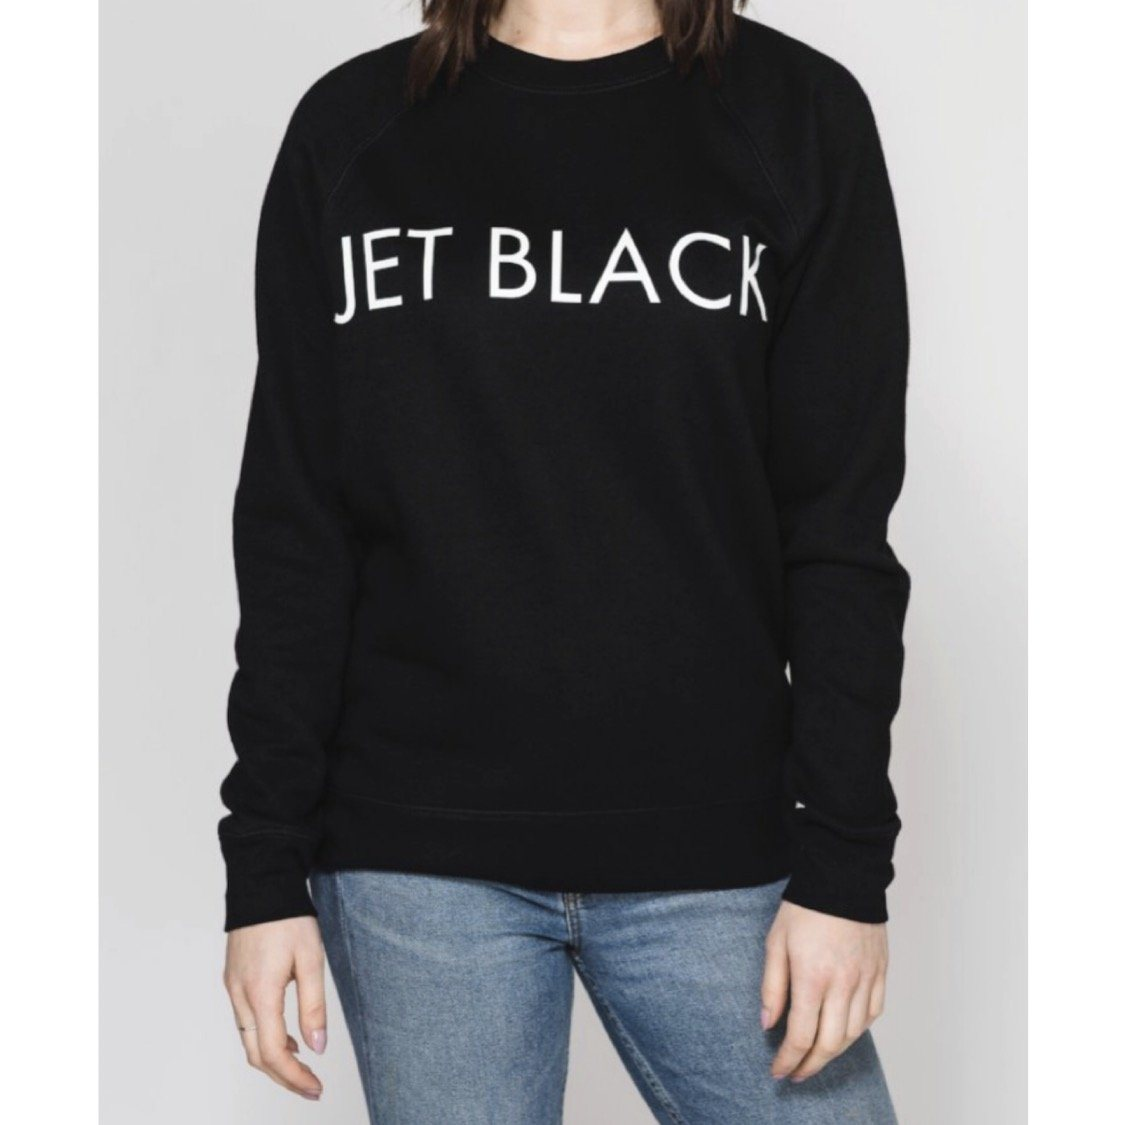 Brunette the Label - Jet Black Crewneck Sweatshirt Sweatshirt Brunette the Label